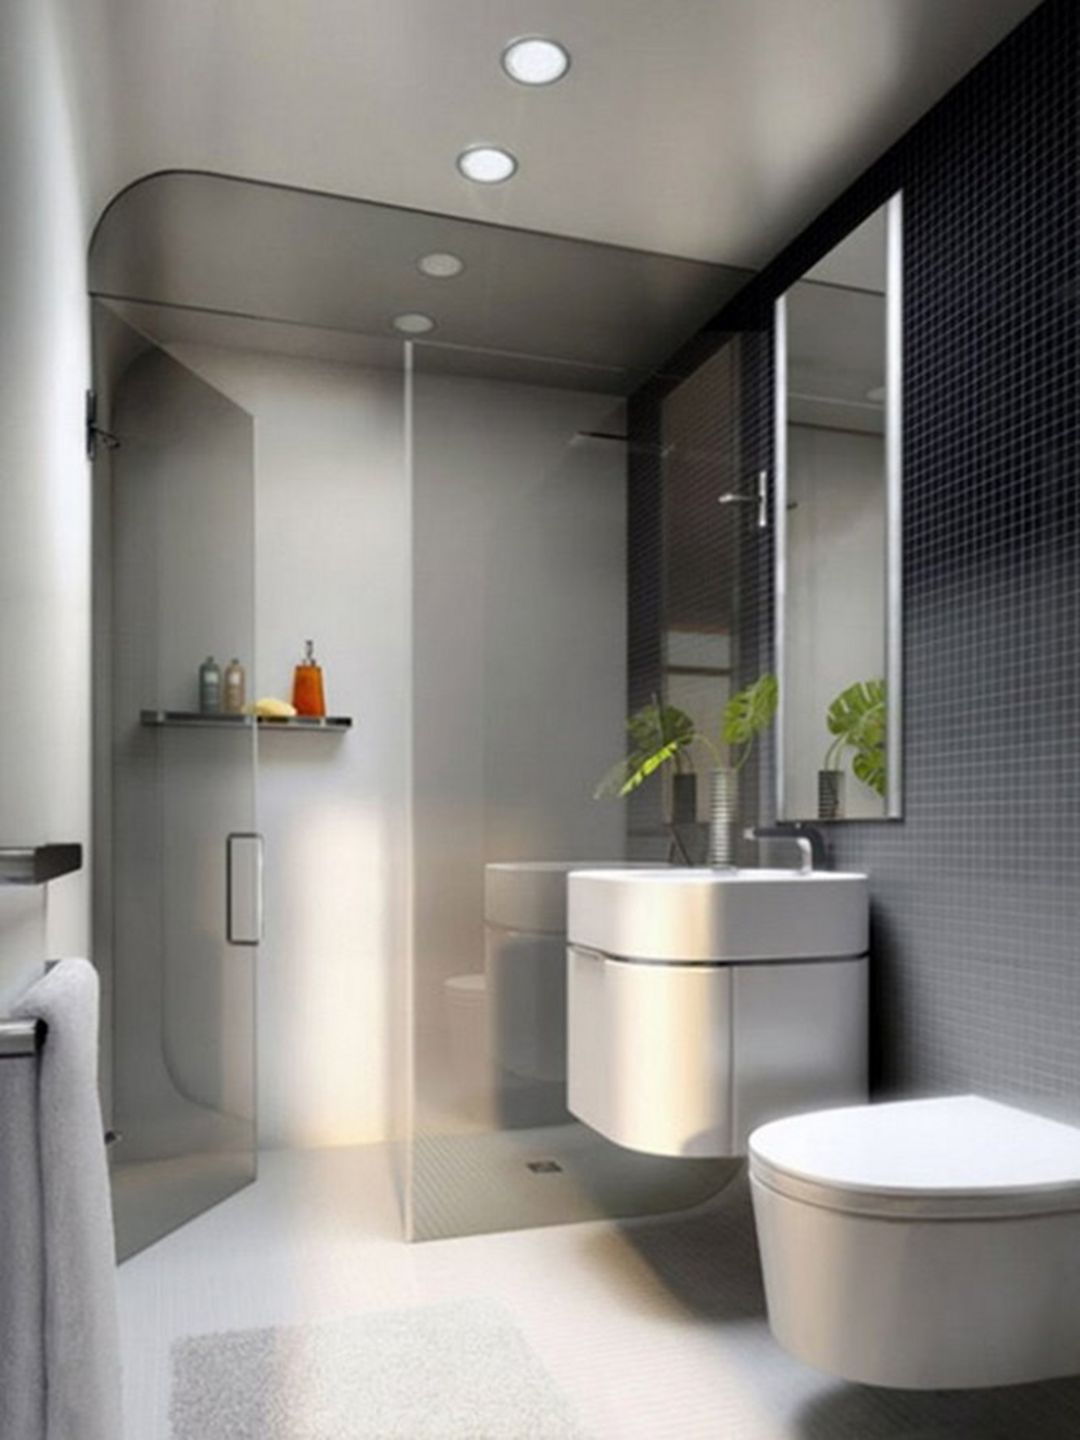 20 beautiful small bathroom designs that are suitable to on bathroom renovation ideas for small bathrooms id=38594